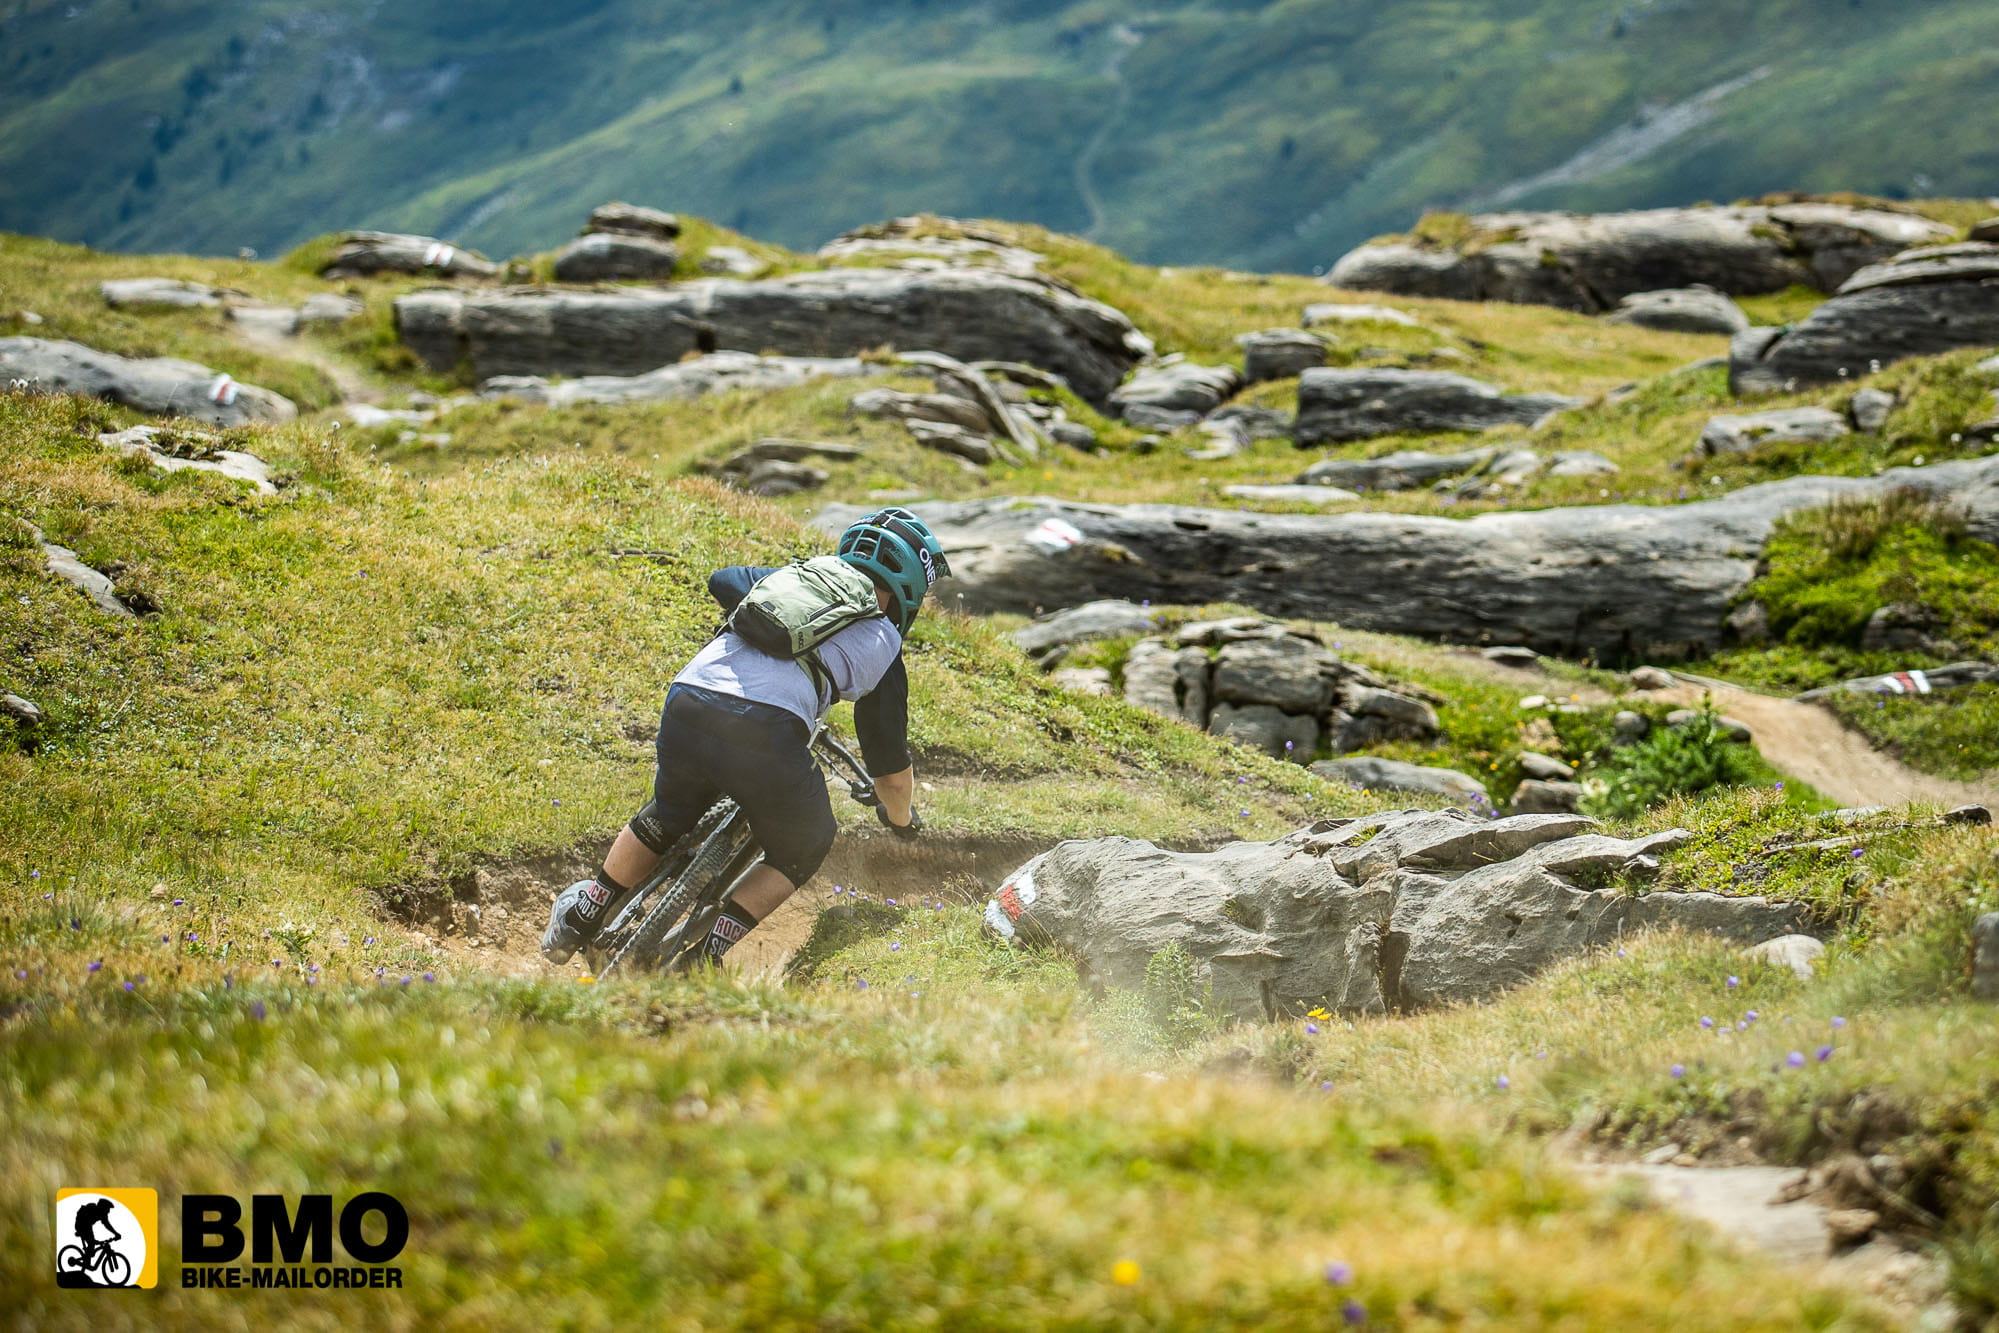 BMO_Home-of-Trails-Flims-Bike-Mailorder-10